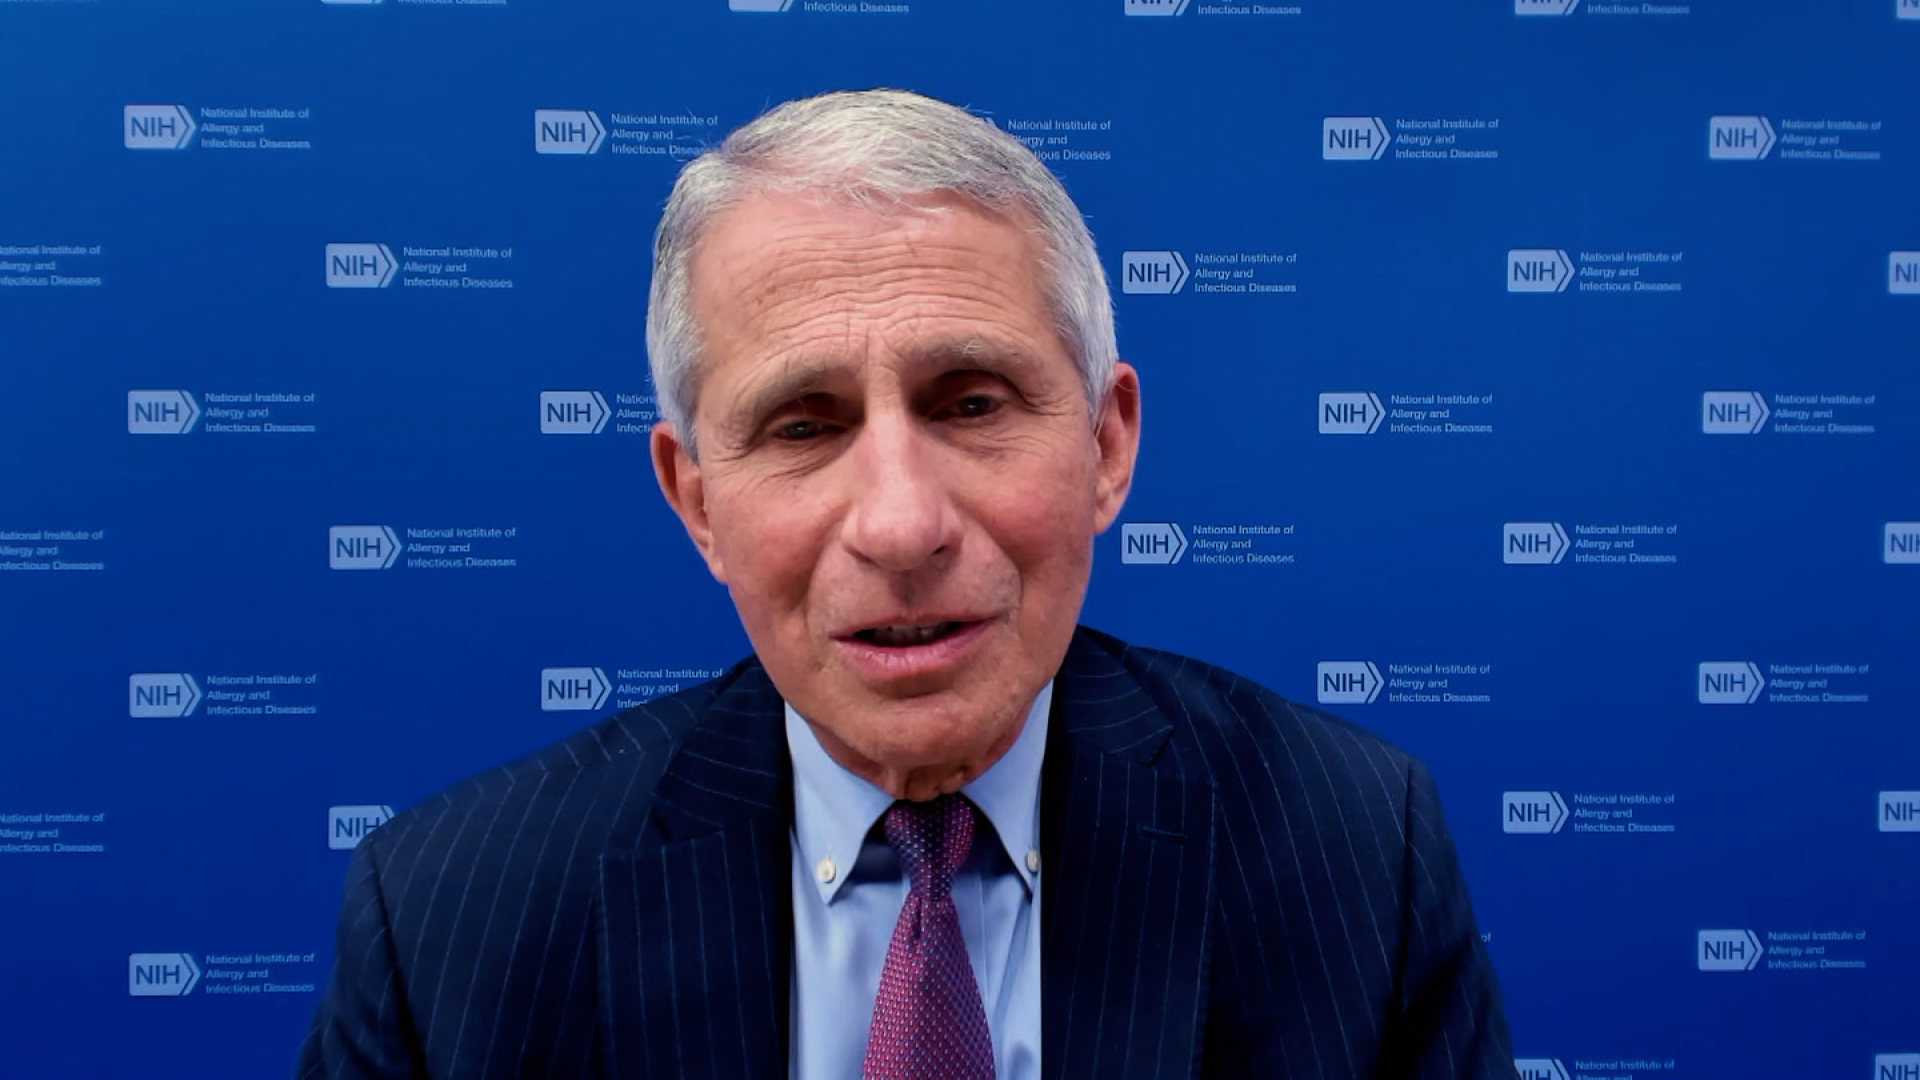 Dr. Anthony Fauci, director of the National Institute of Allergy and Infectious Diseases, speaks during an interview on February 14.